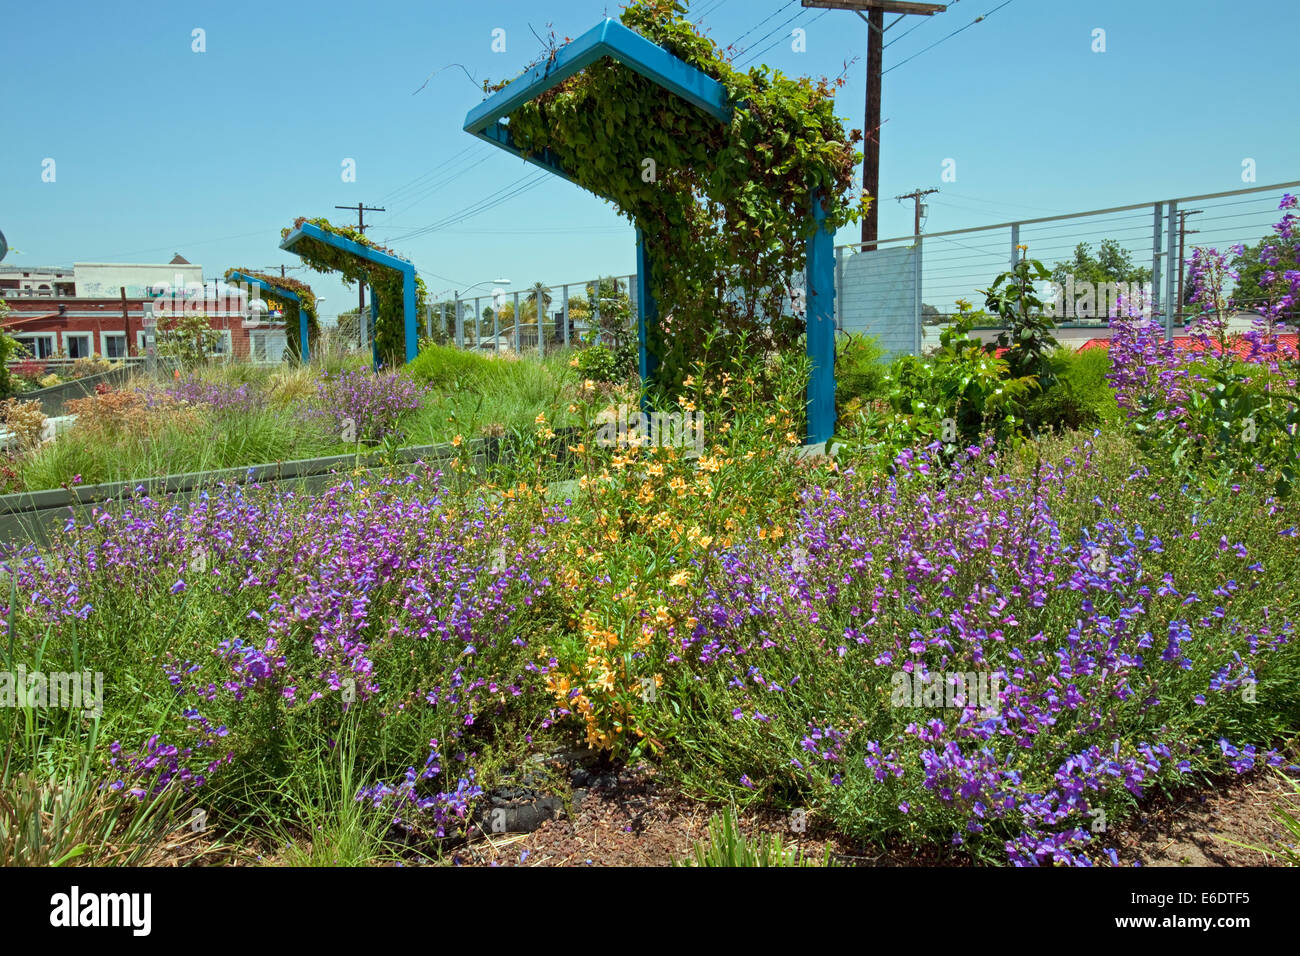 Drought tolerant green roof garden at the LEEDS-certified Council District 9 Neighborhood City Hall, LA, CA, USA. - Stock Image